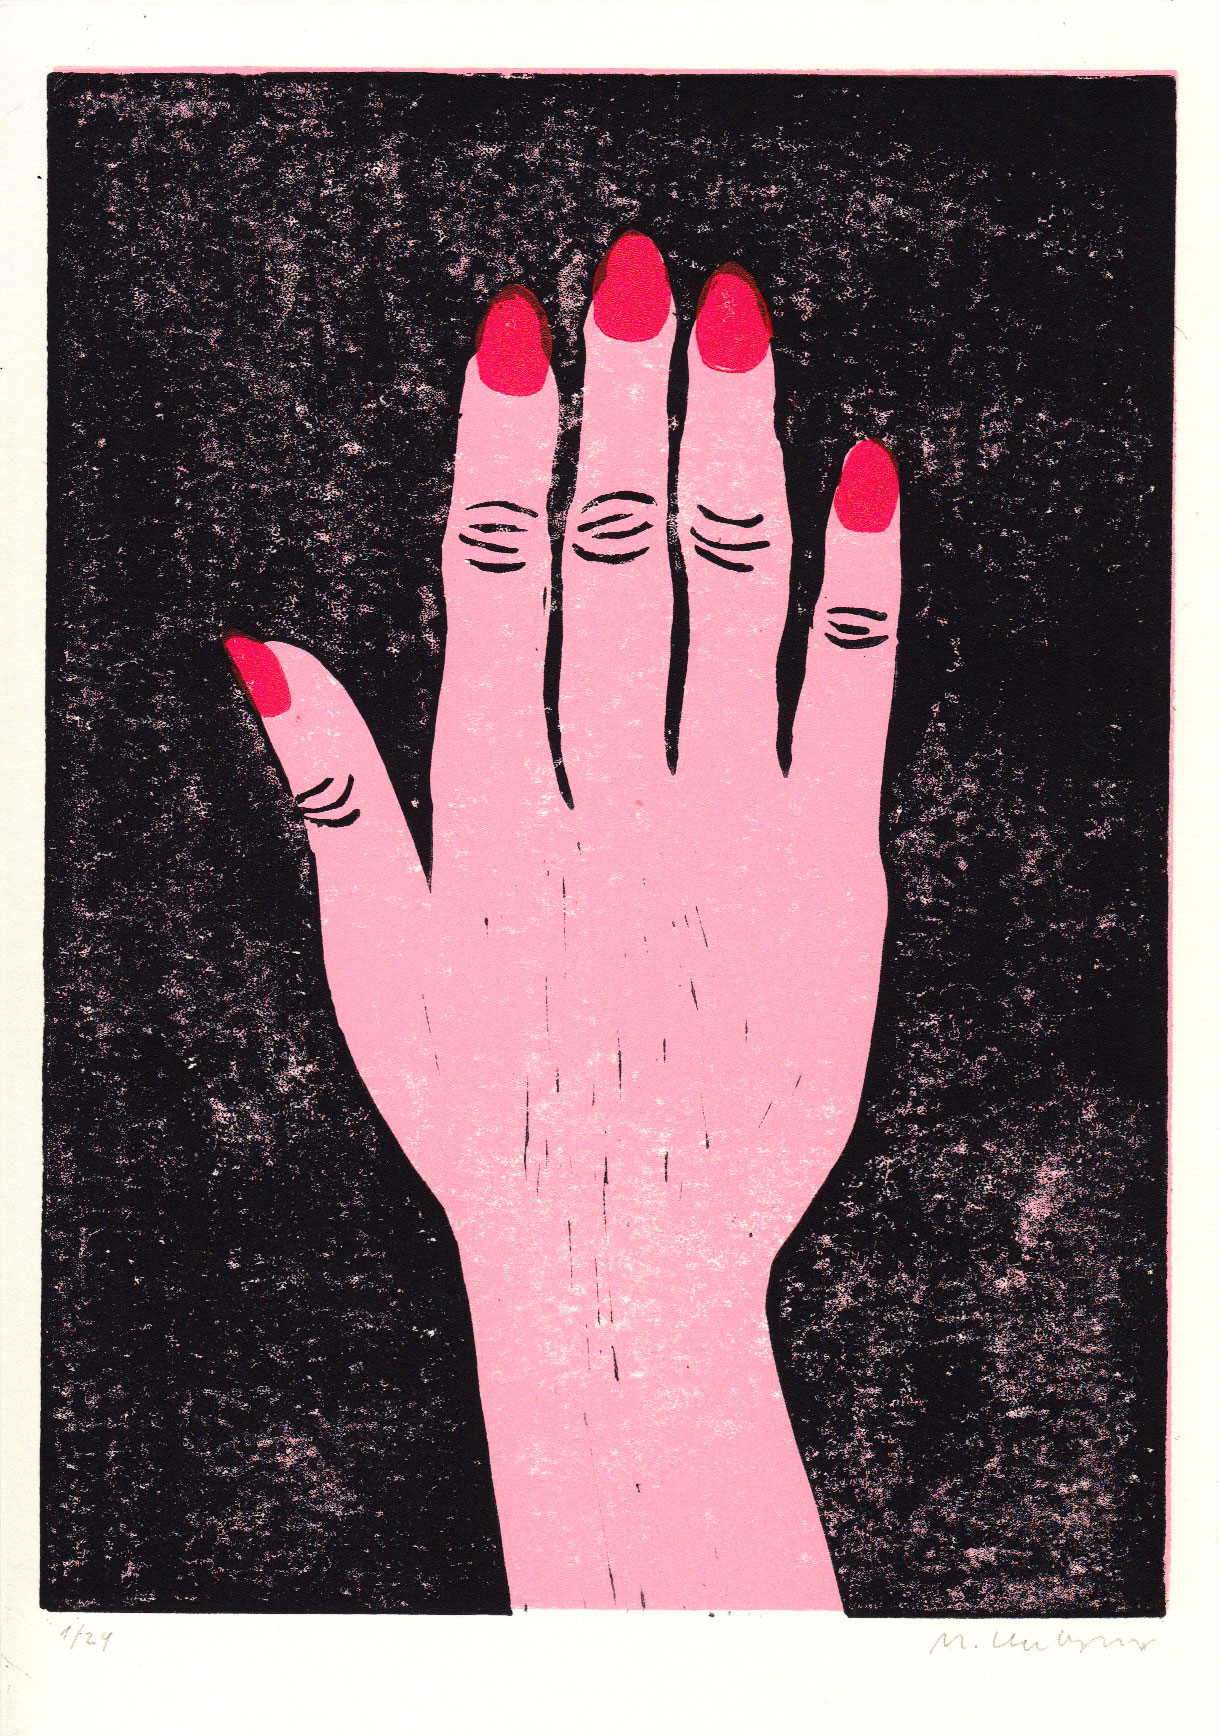 3-color linoprint of a hand with red fingernails